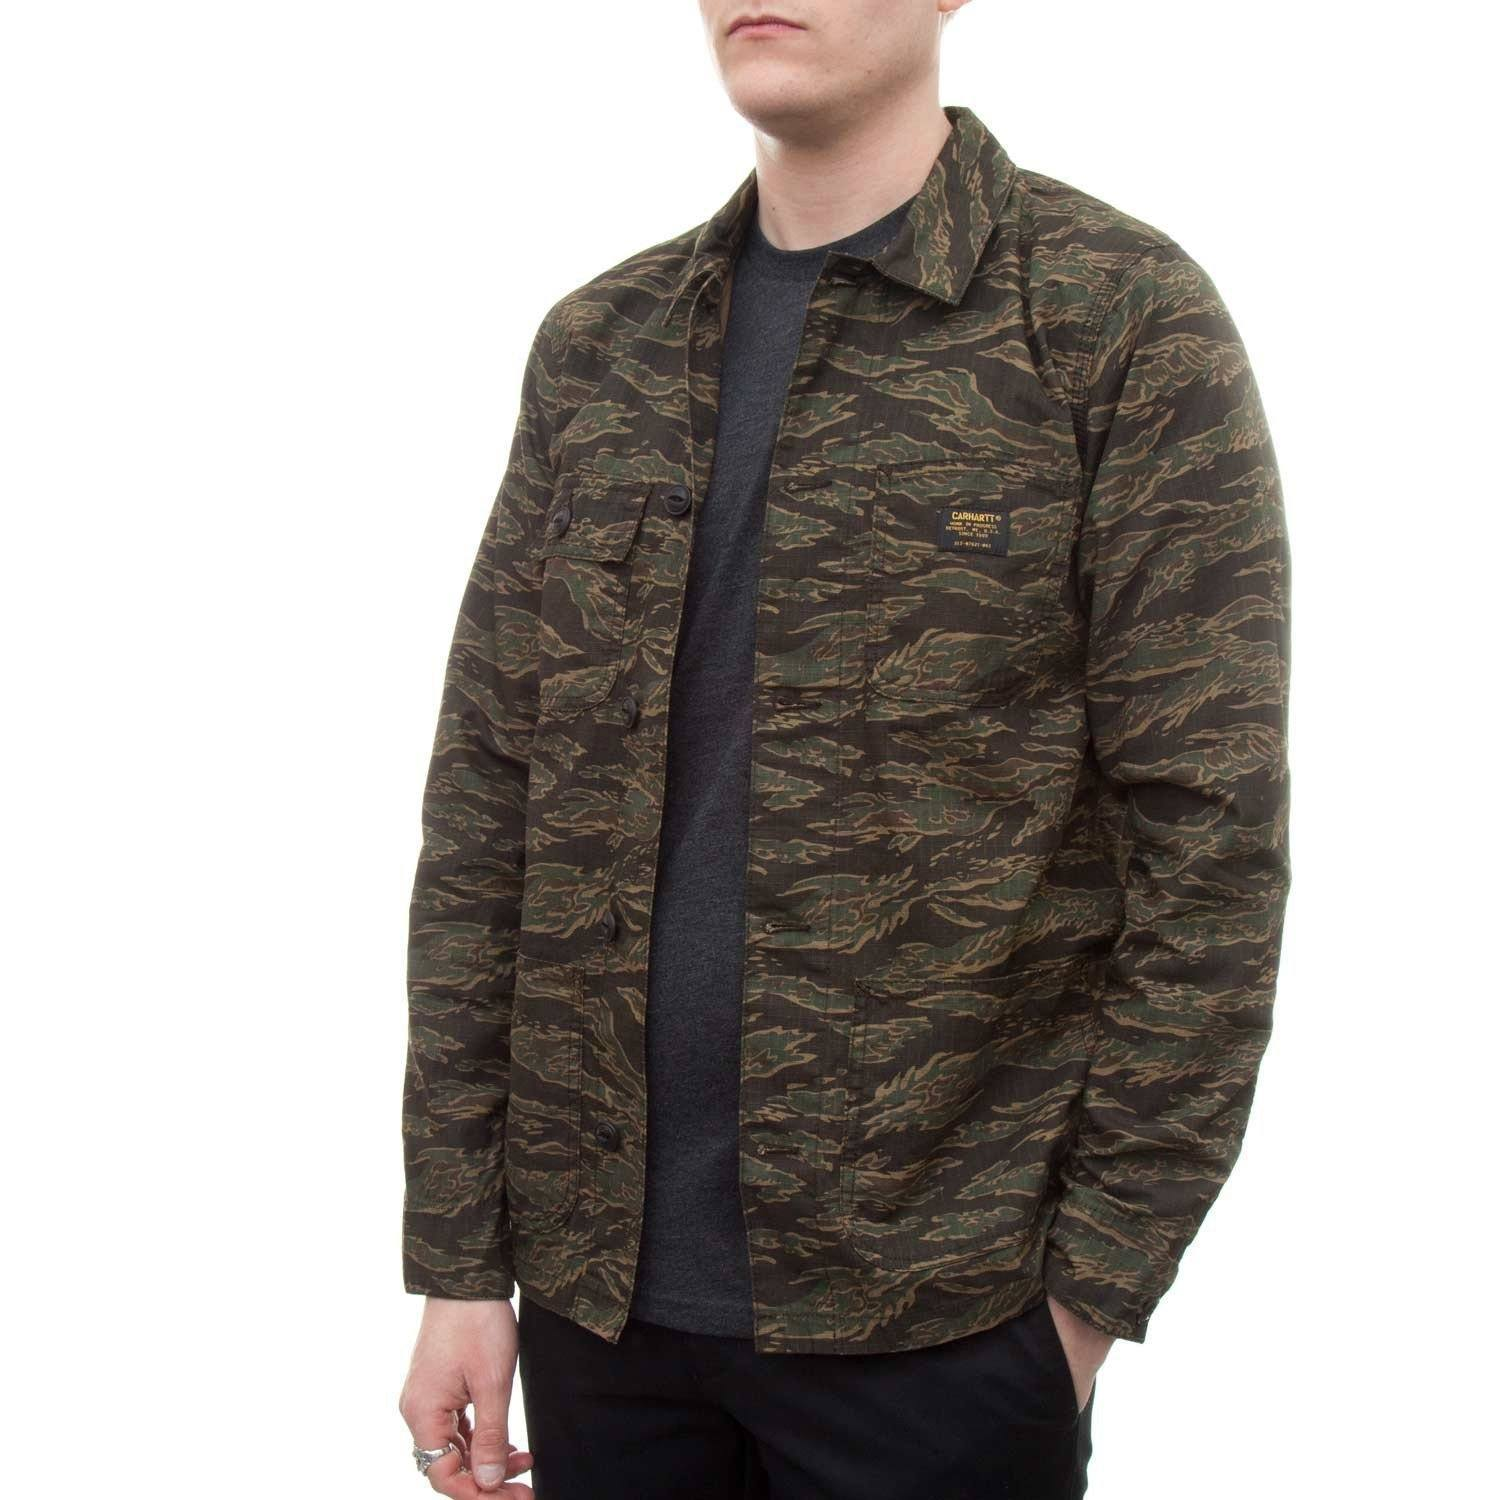 Carhartt Michigan Chore Jacket (Tiger Camo) - Number Six